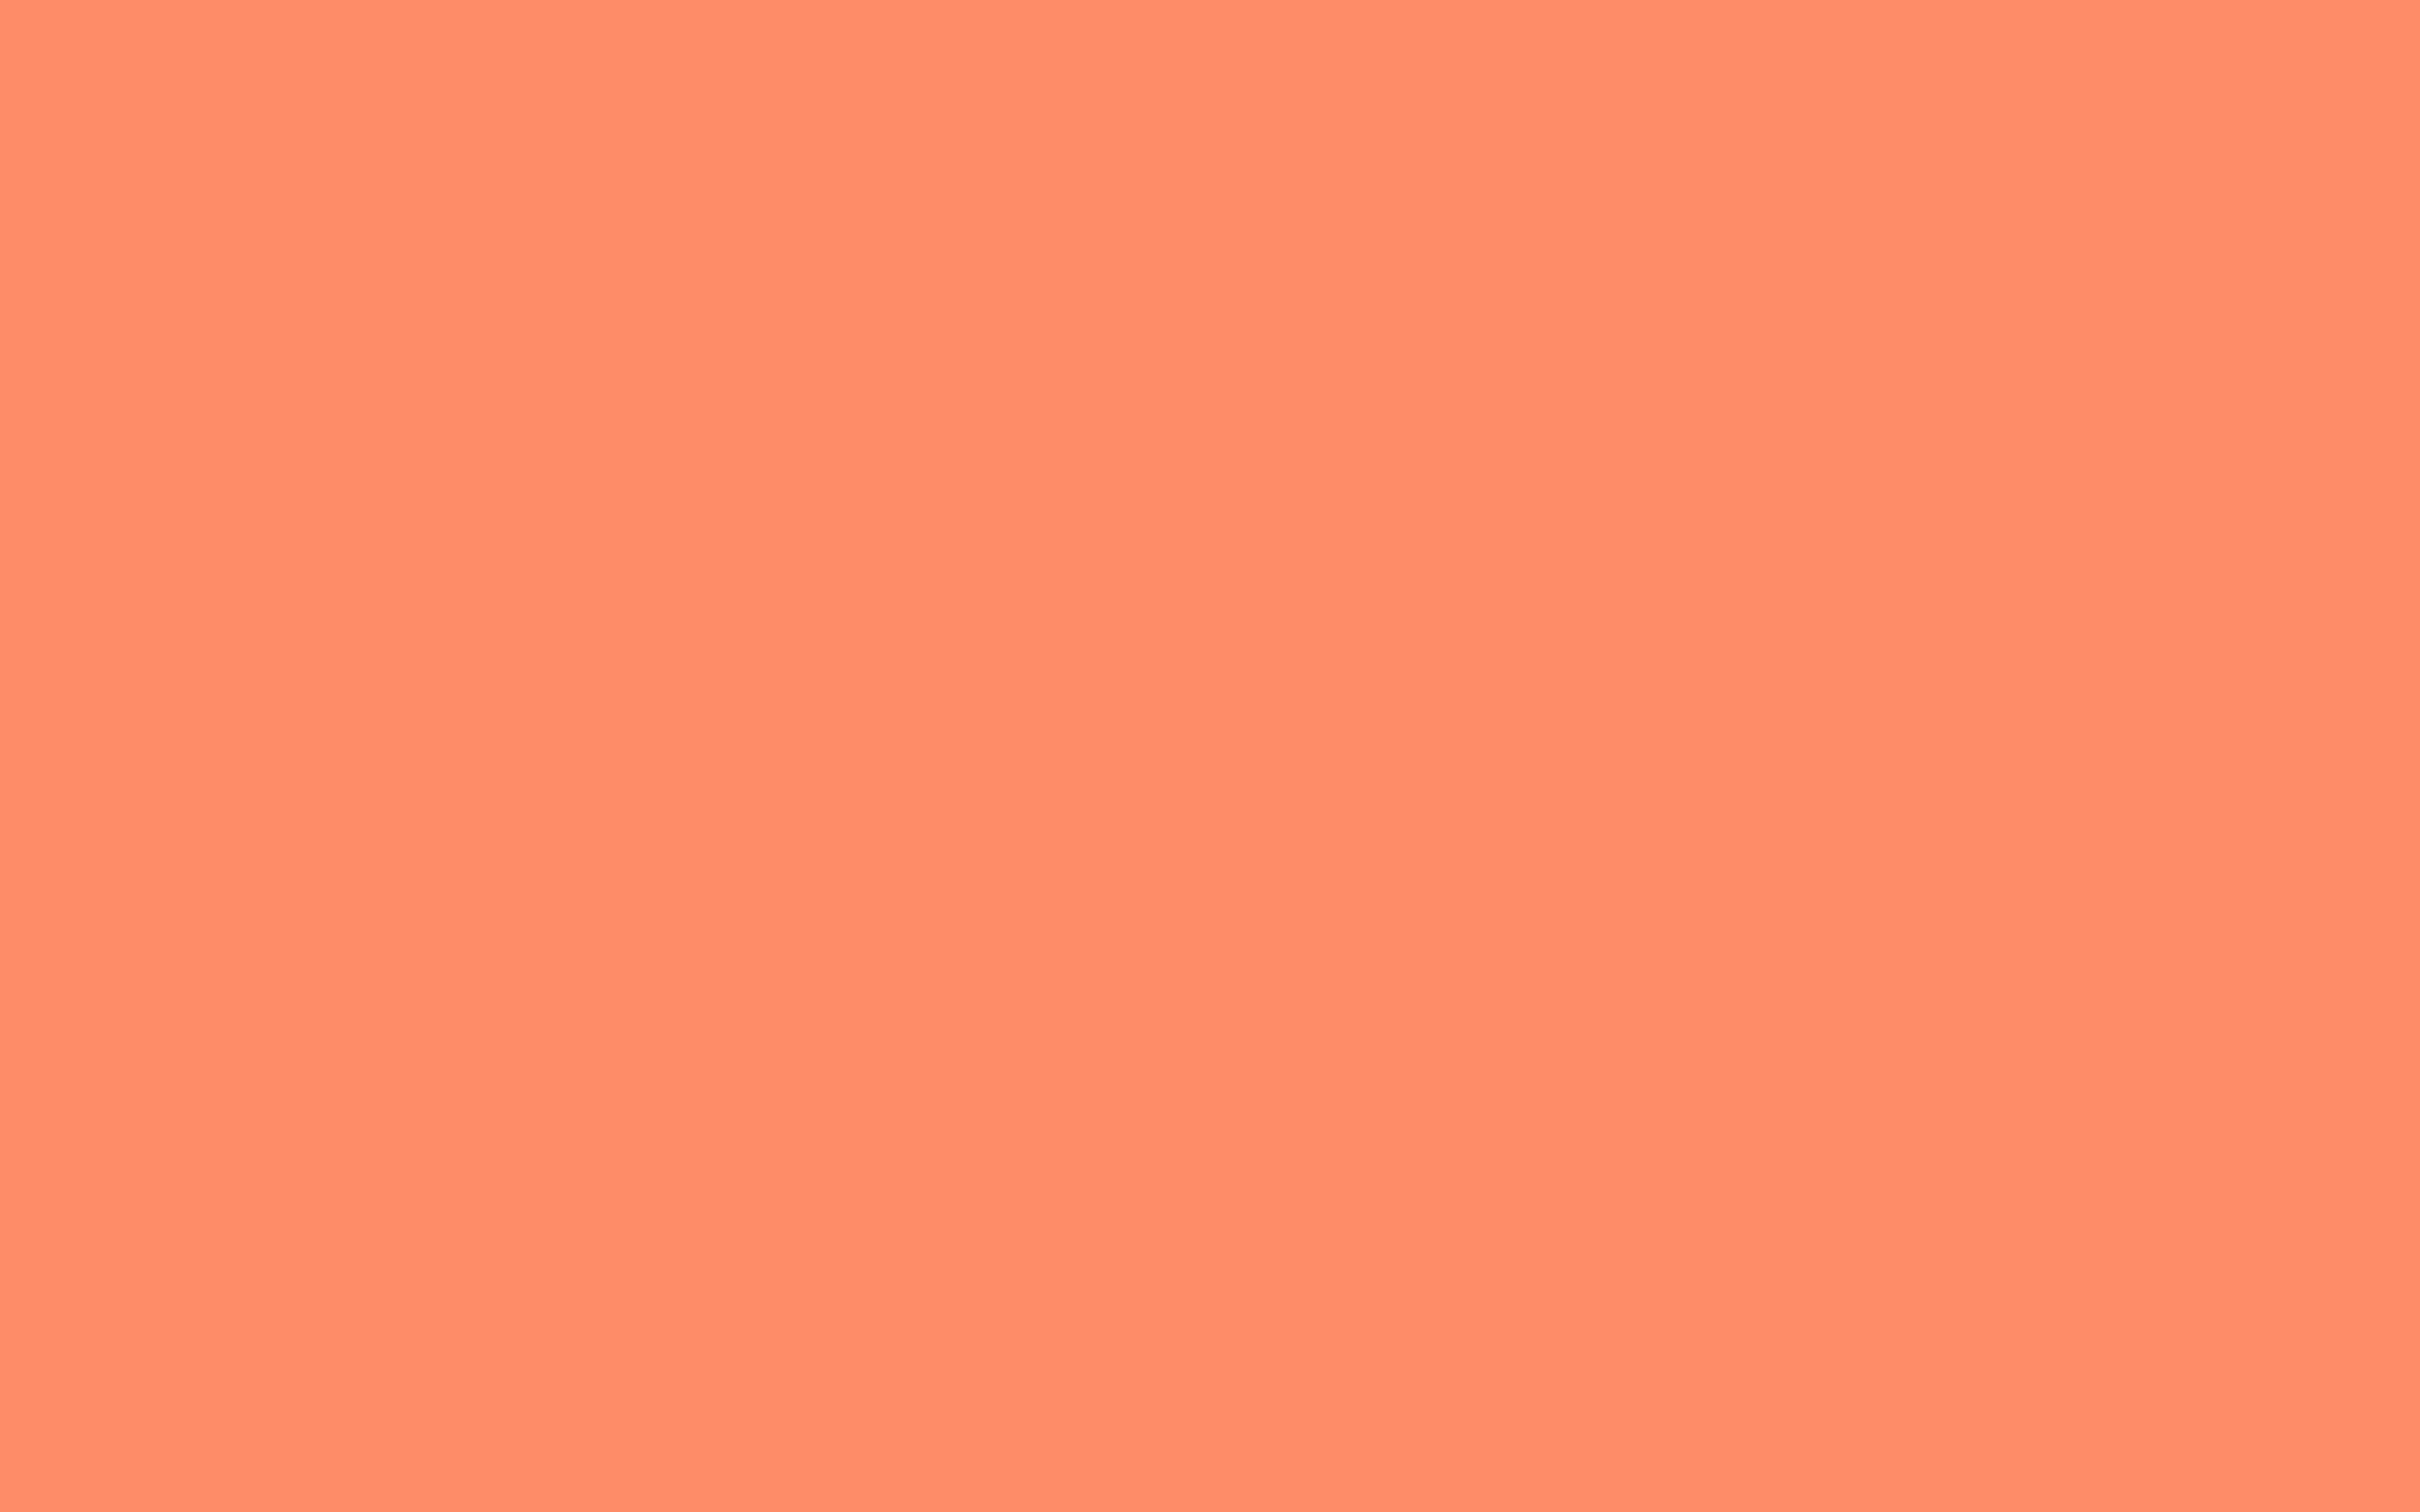 2560x1600 Salmon Solid Color Background